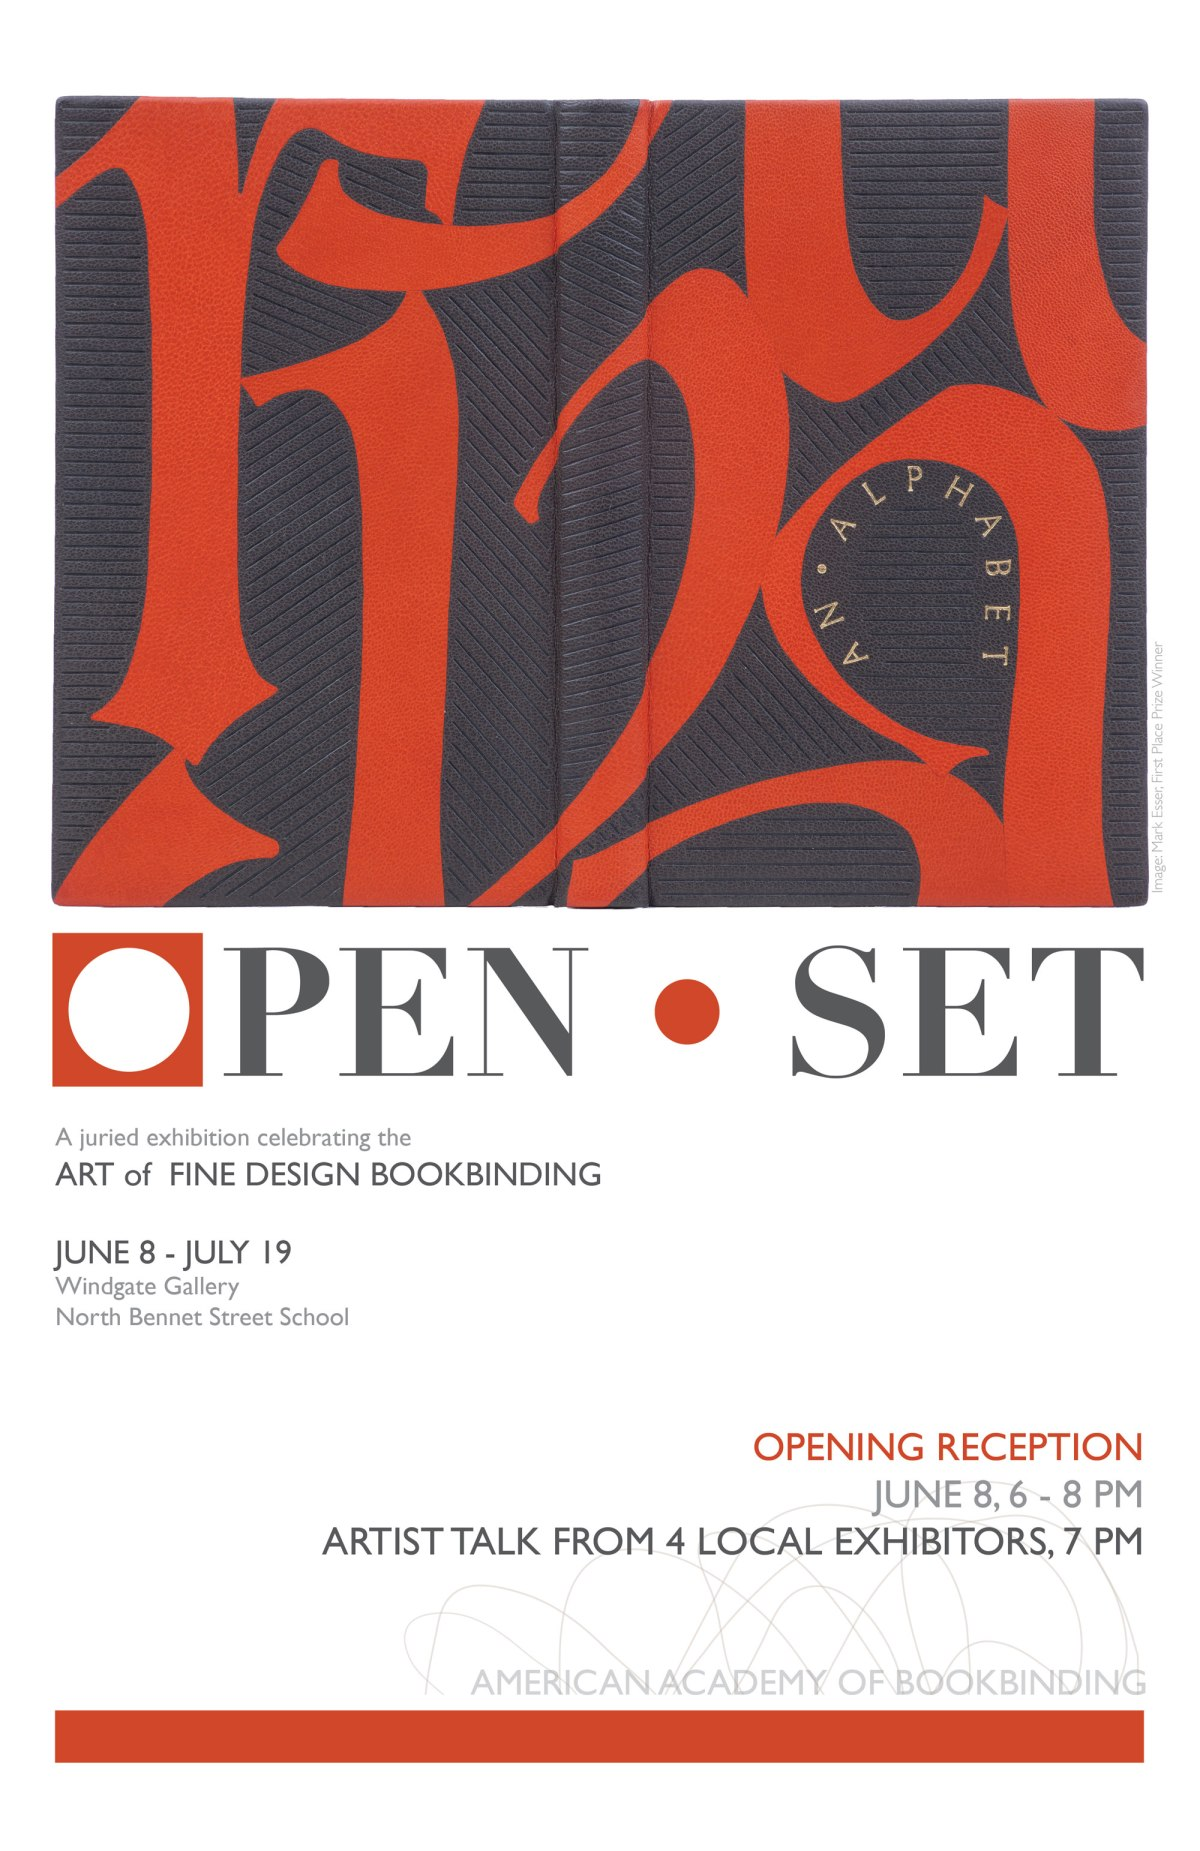 Opening Reception for the American Academy of Bookbinding Open/Set Exhibit – June 8th in Boston,MA